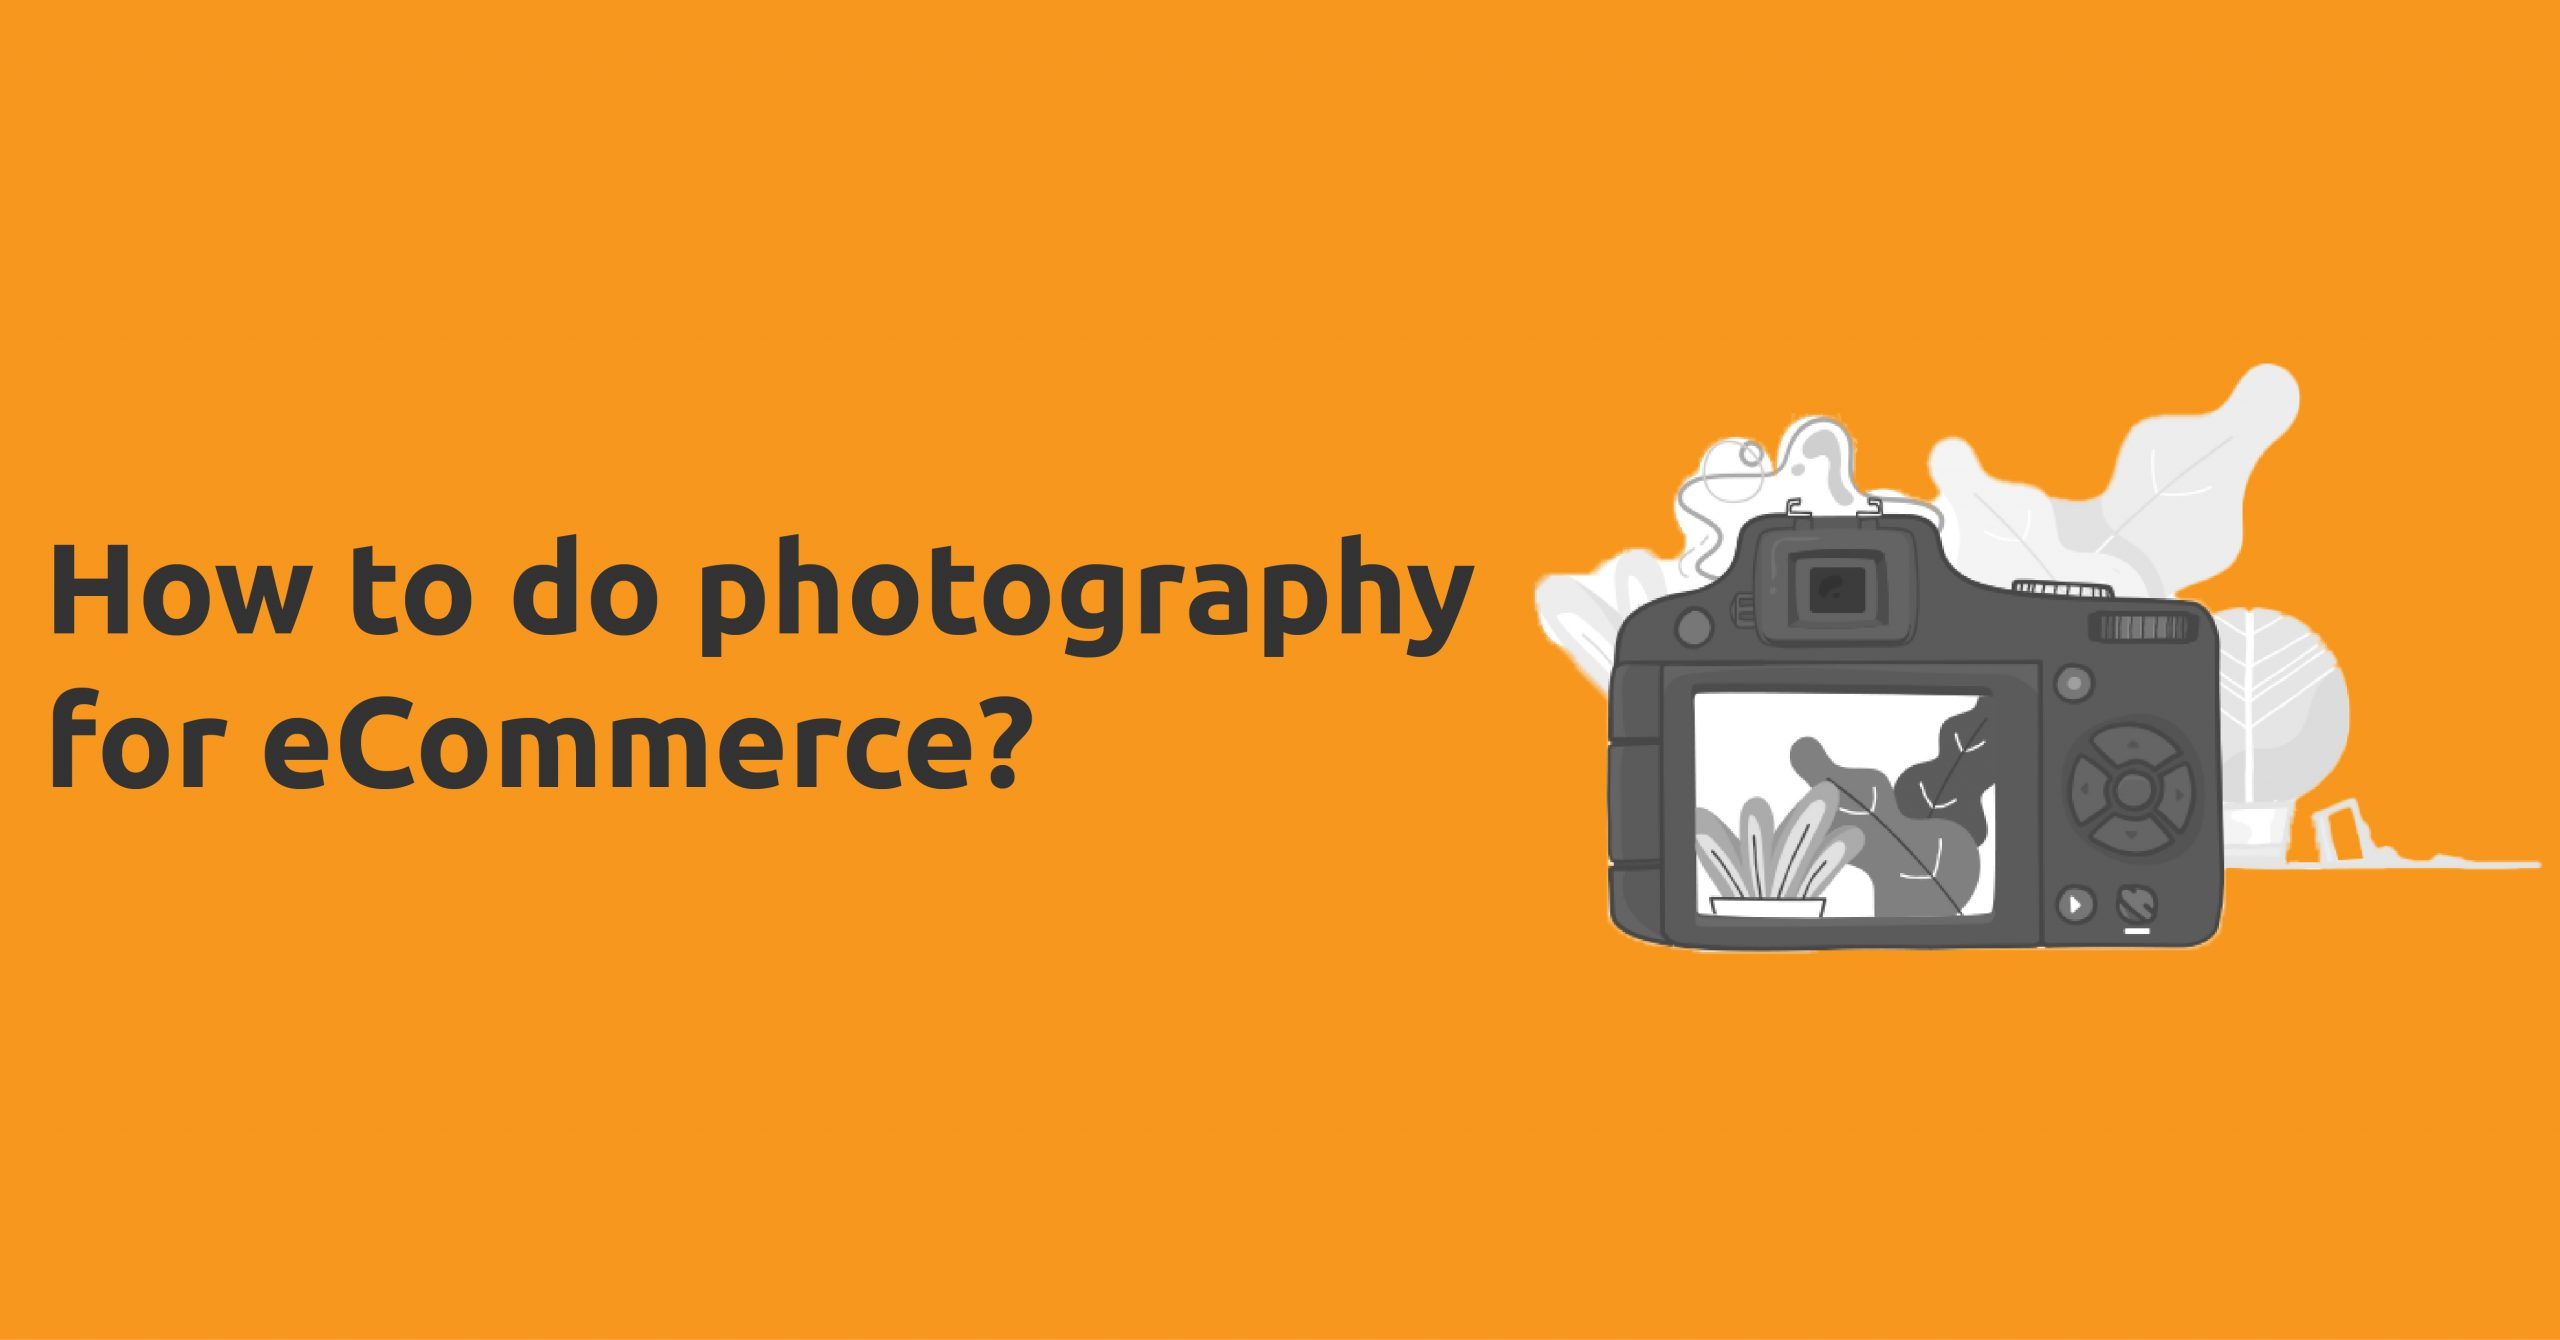 ecommerce-photography-sellersupport